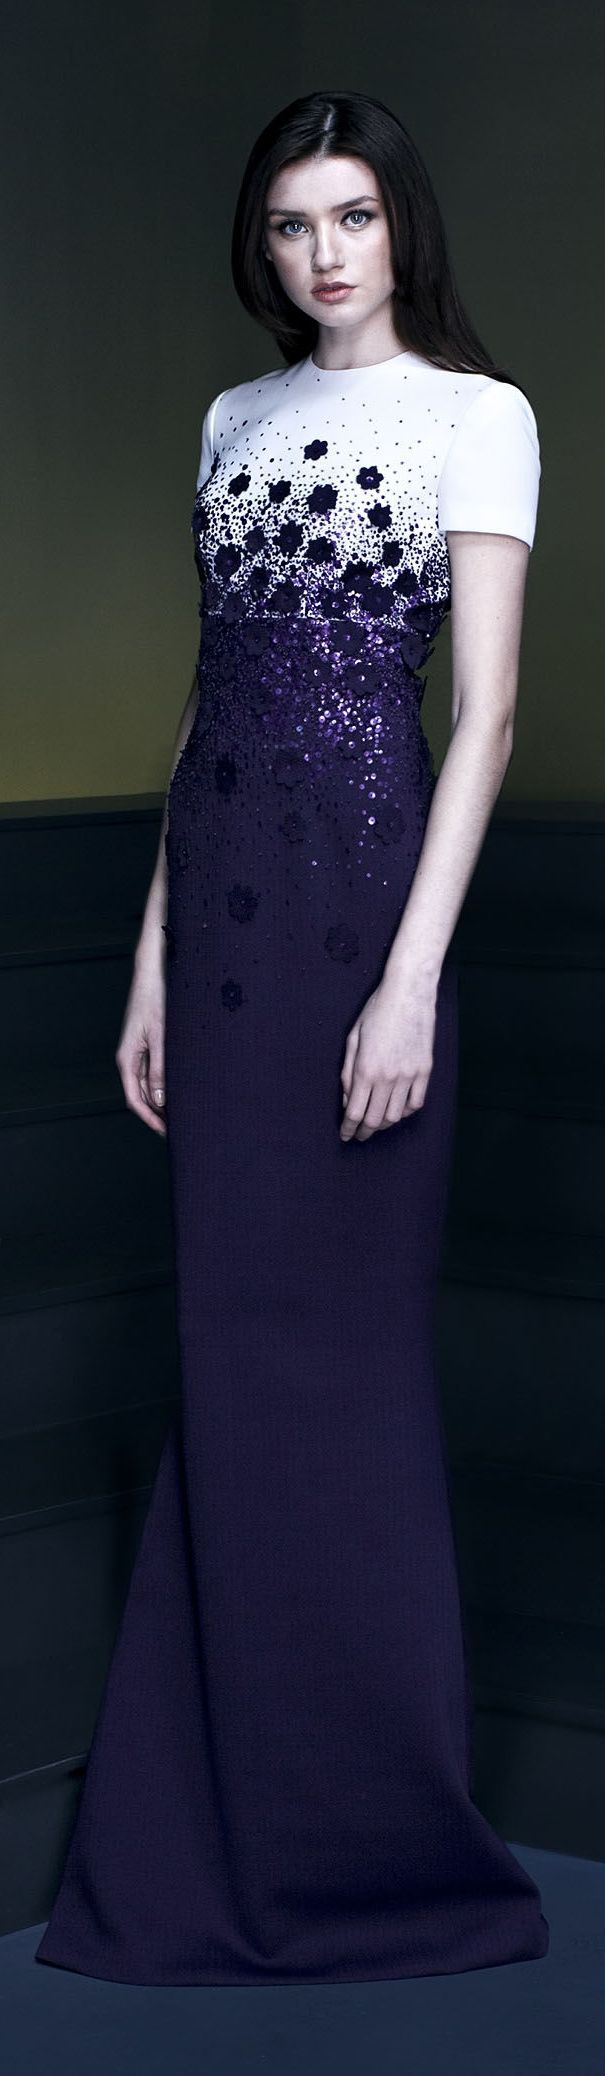 """Georges Hobeika RTW """"Signature"""" F/W 2014-2015 #Modest doesn't mean frump. #DressingWithDignity http://www.ColleenHammond.com"""